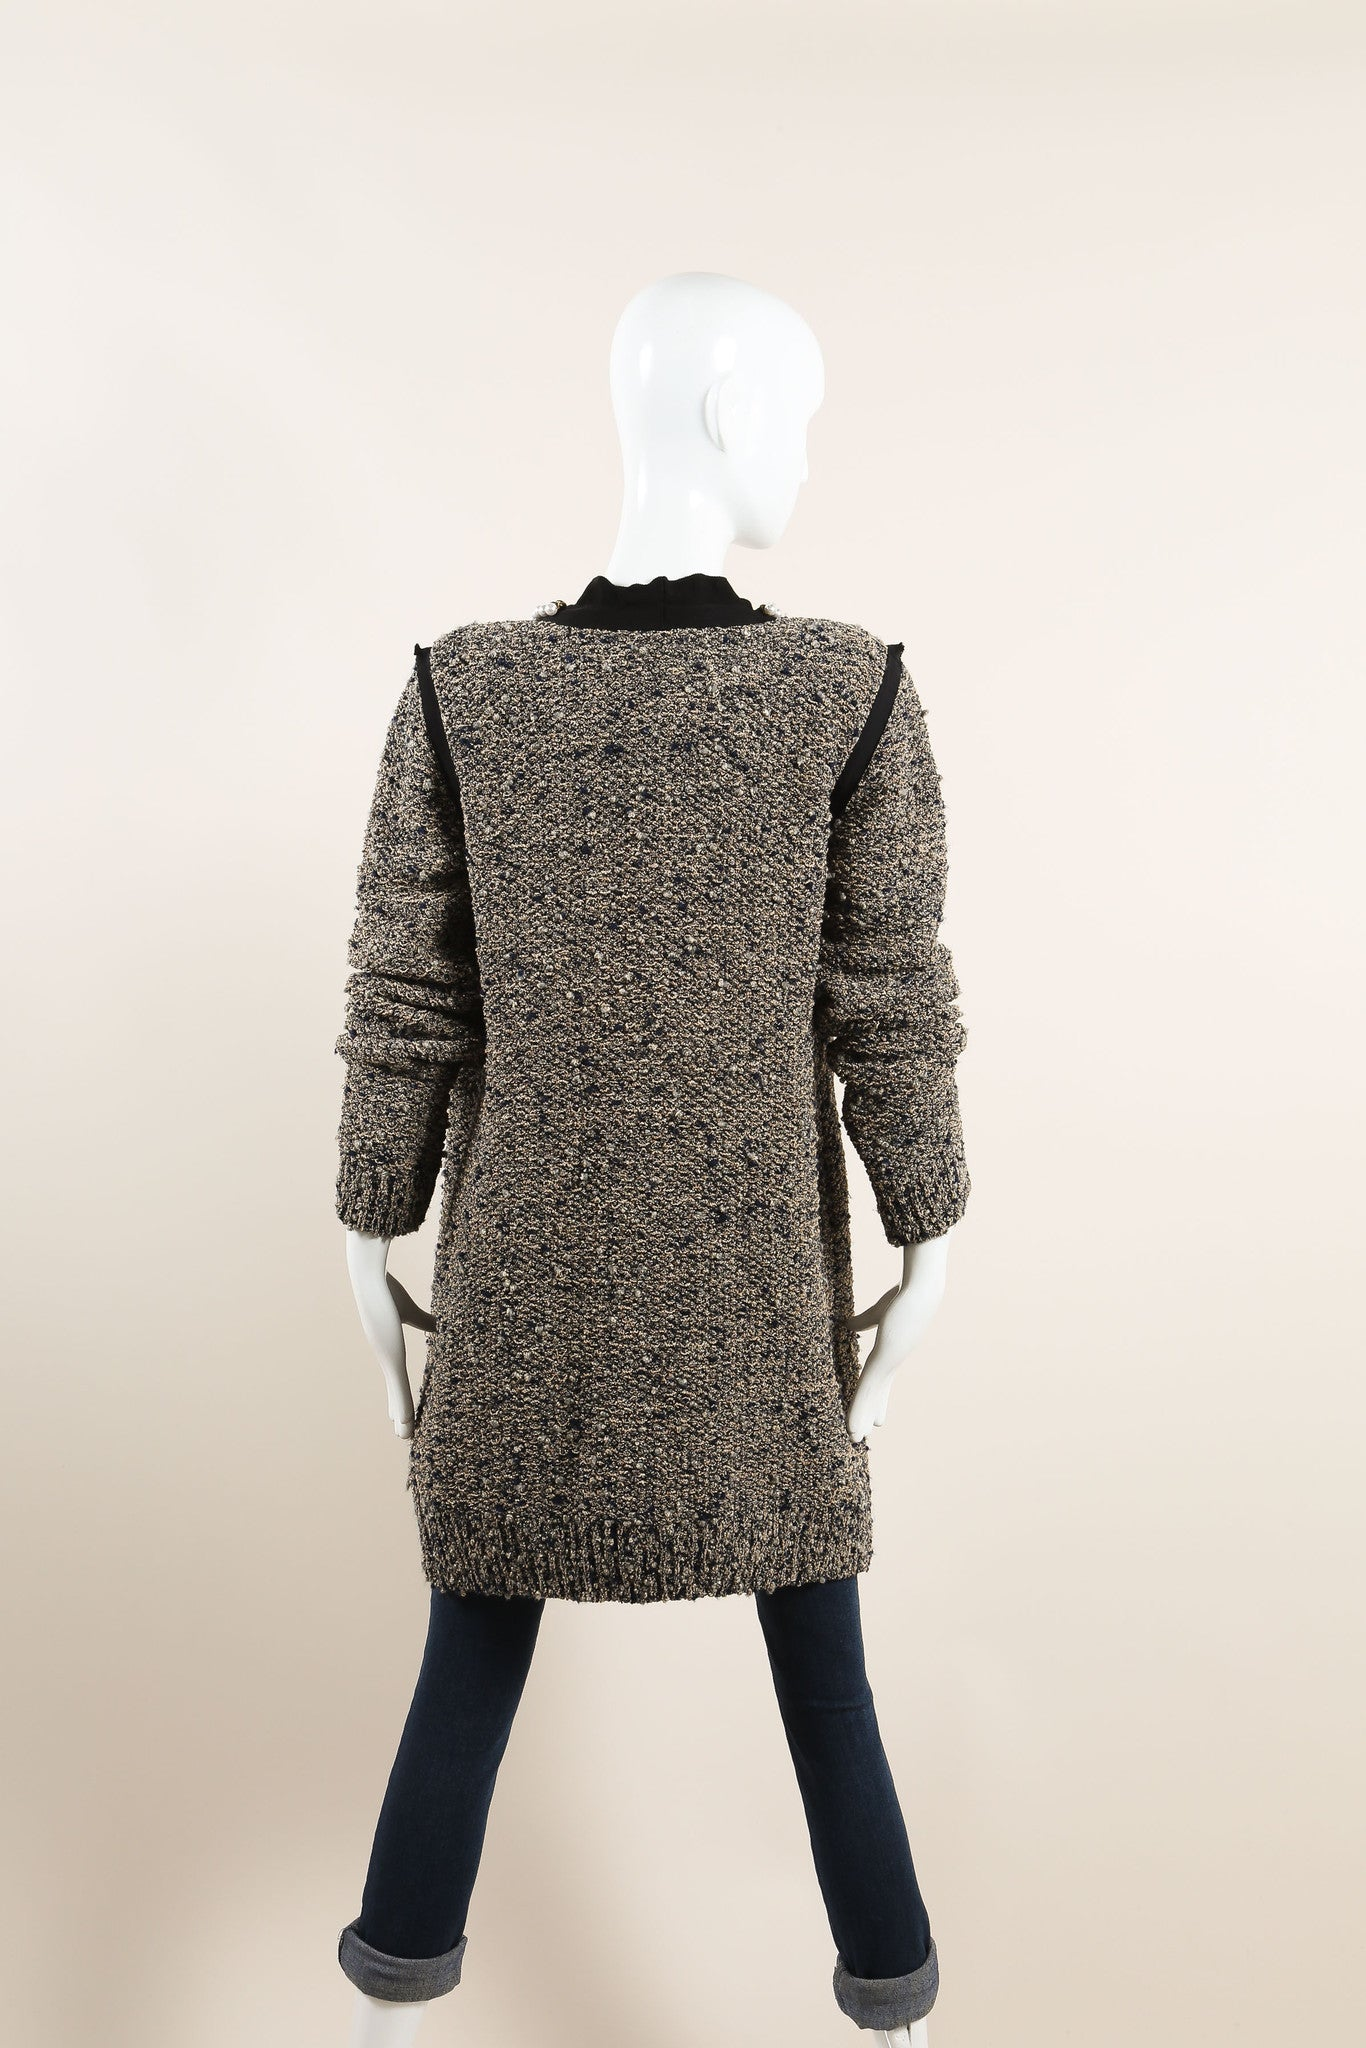 Lanvin Beige and Navy Wool and Silk Tweed Metallic Pearl Chain Trim Jacket Backview